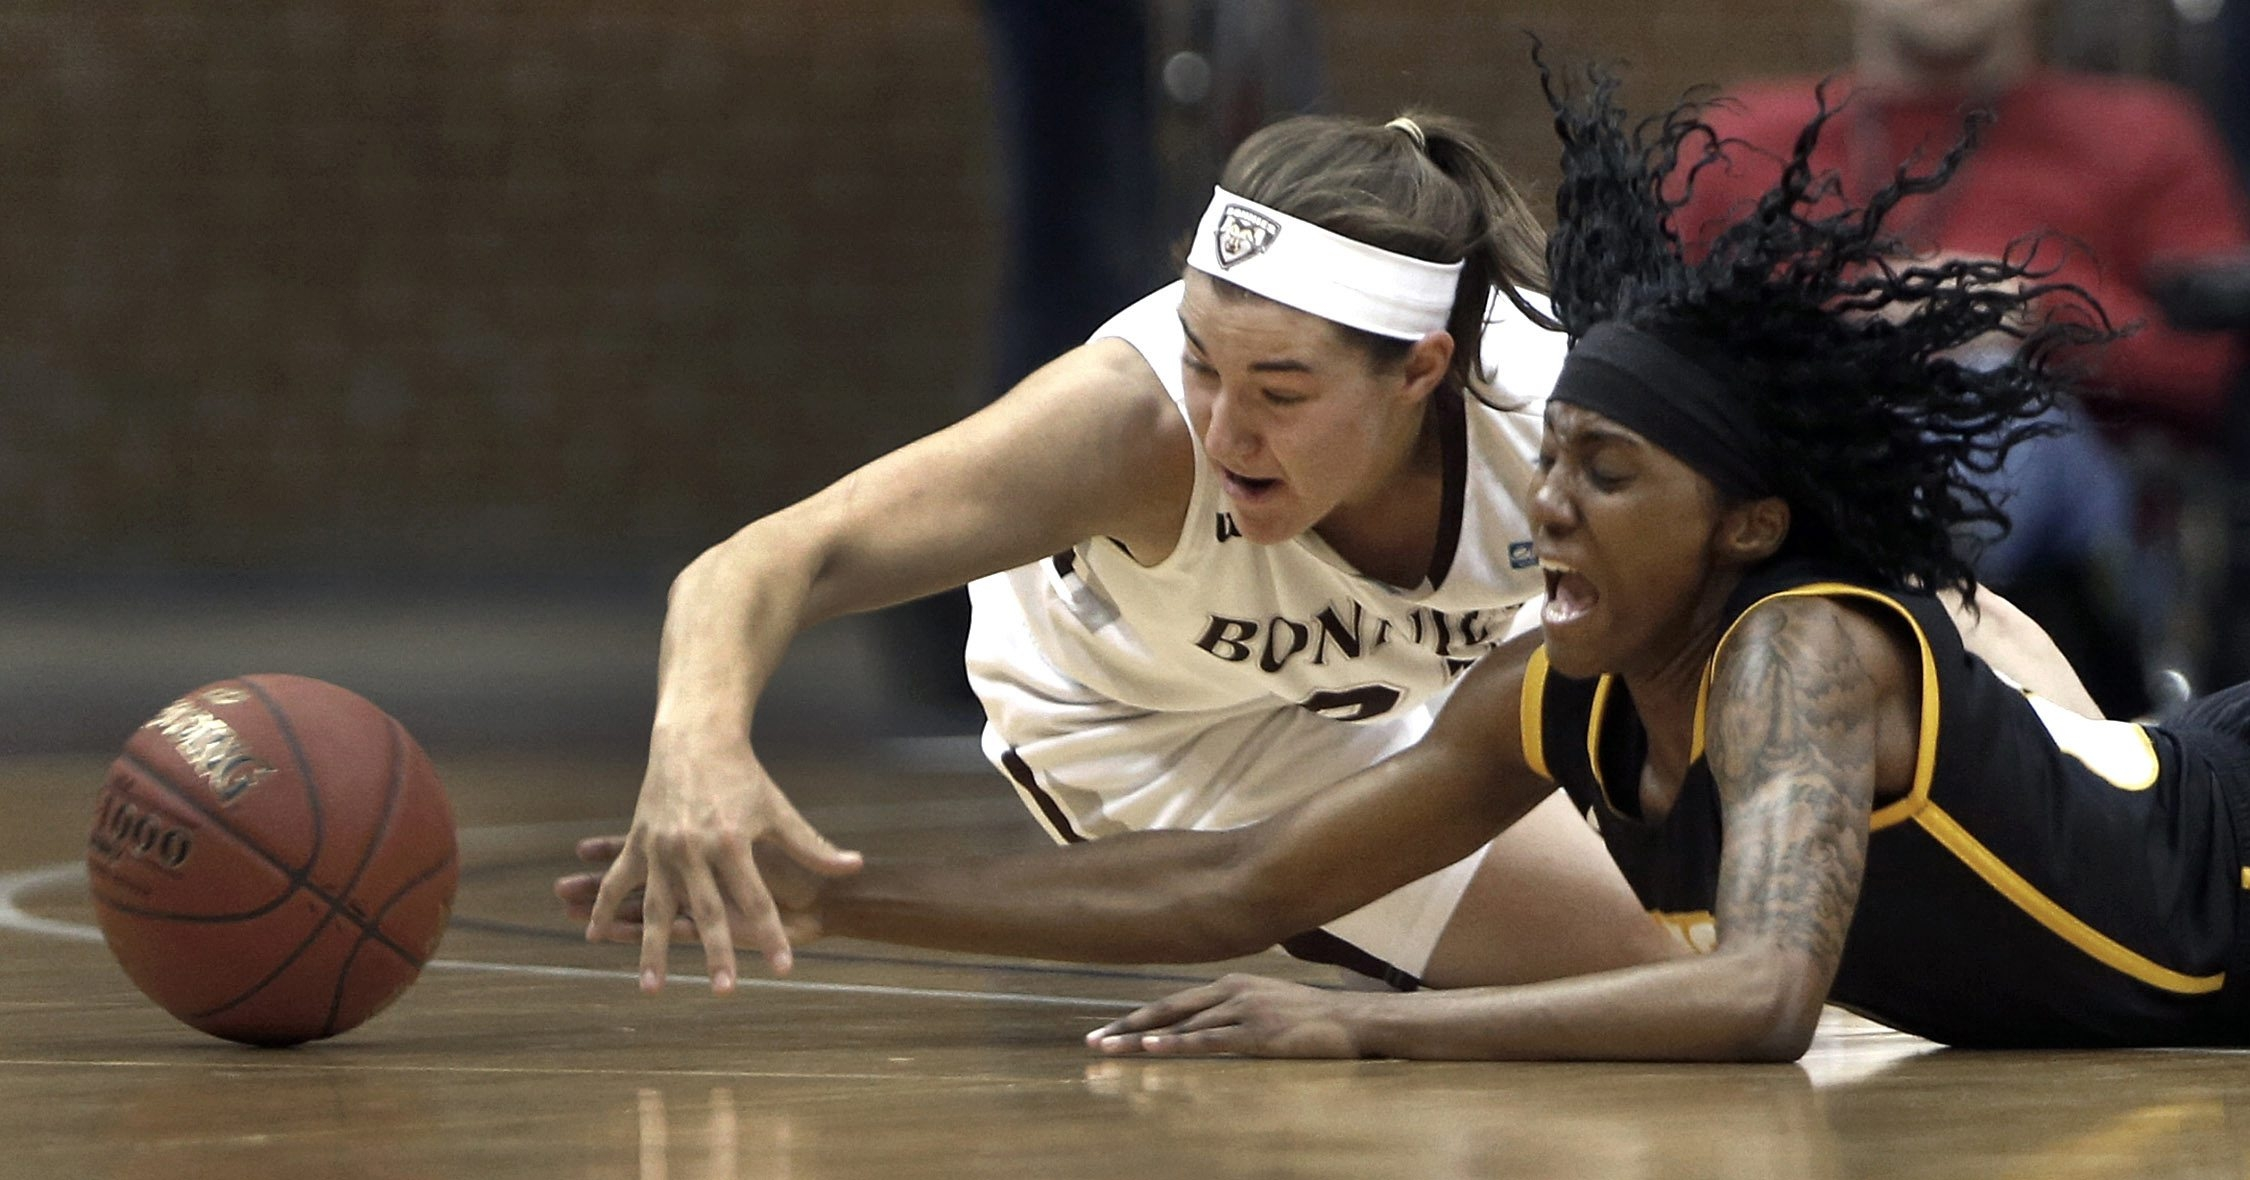 VCU's Ashley Pegram and St. Bonaventure's Nyla Reuter scramble to recover a loose ball in the first half of Friday's Atlantic 10 quarterfinals at the Richmond Coliseum. (Richmond Times-Dispatch)